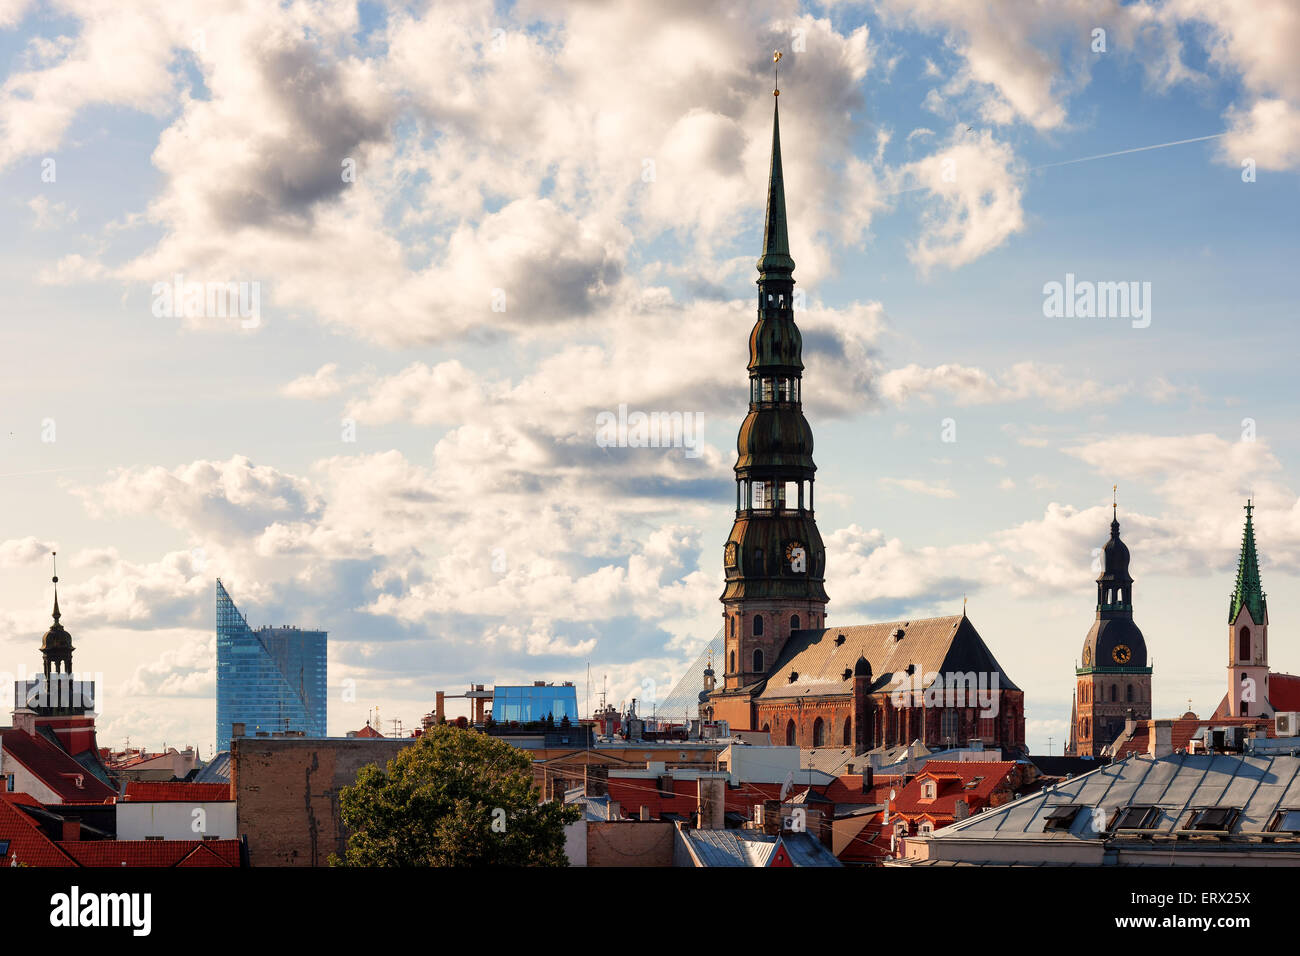 Church spiers and roofs of the old city of Riga in the beautiful sunny summer day with clouds - Stock Image